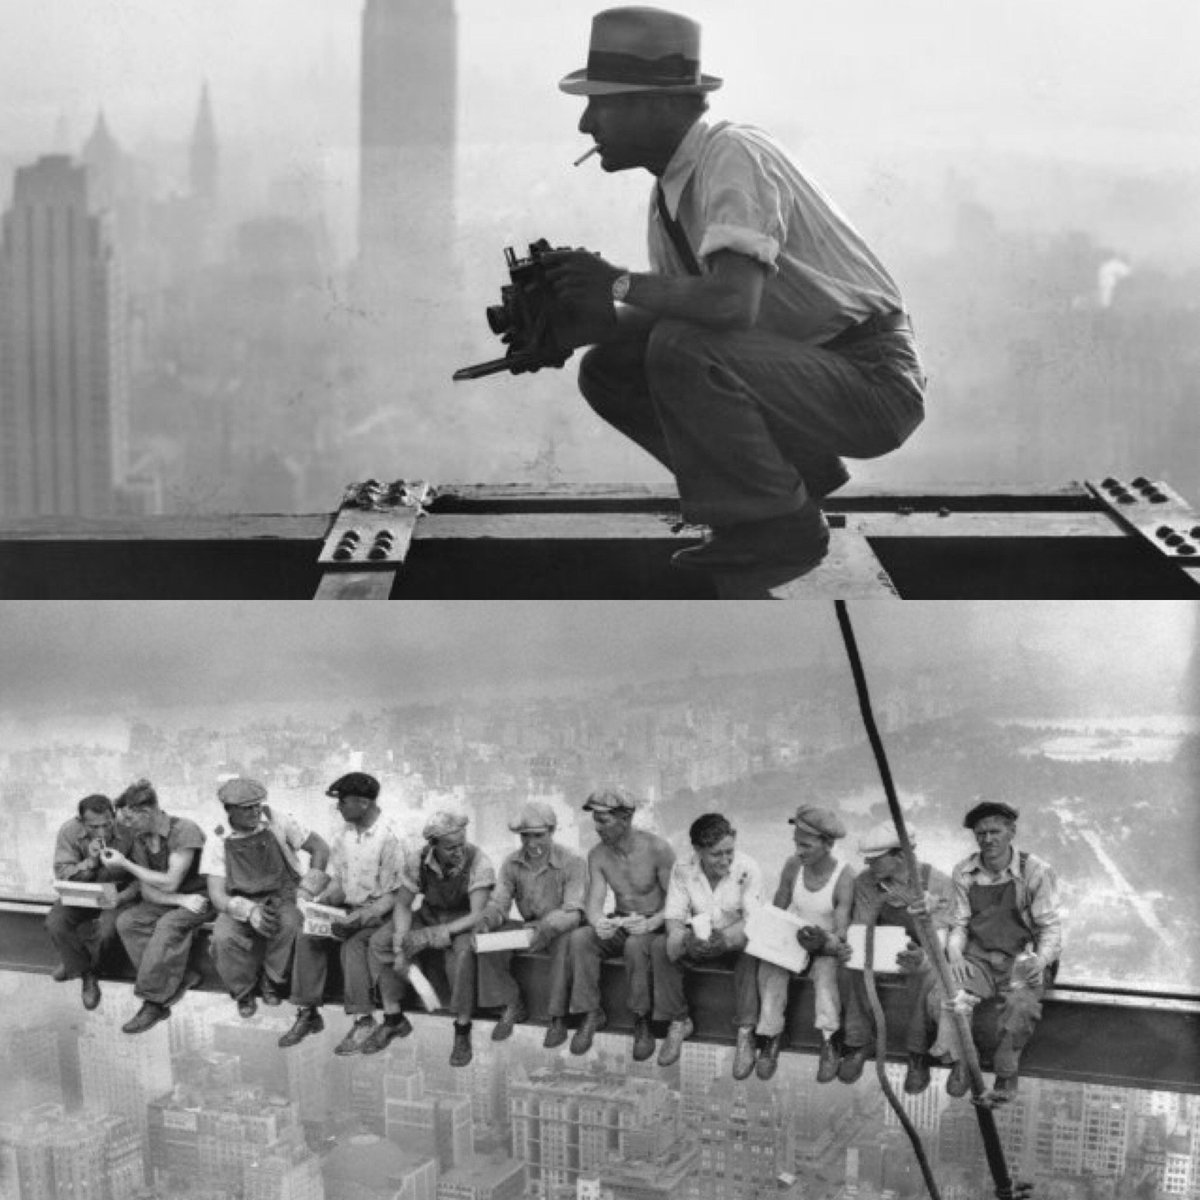 That time right before Charles Ebbets took that iconic photo. #TBT #photography #photo #nyc https://t.co/XE46fPet28